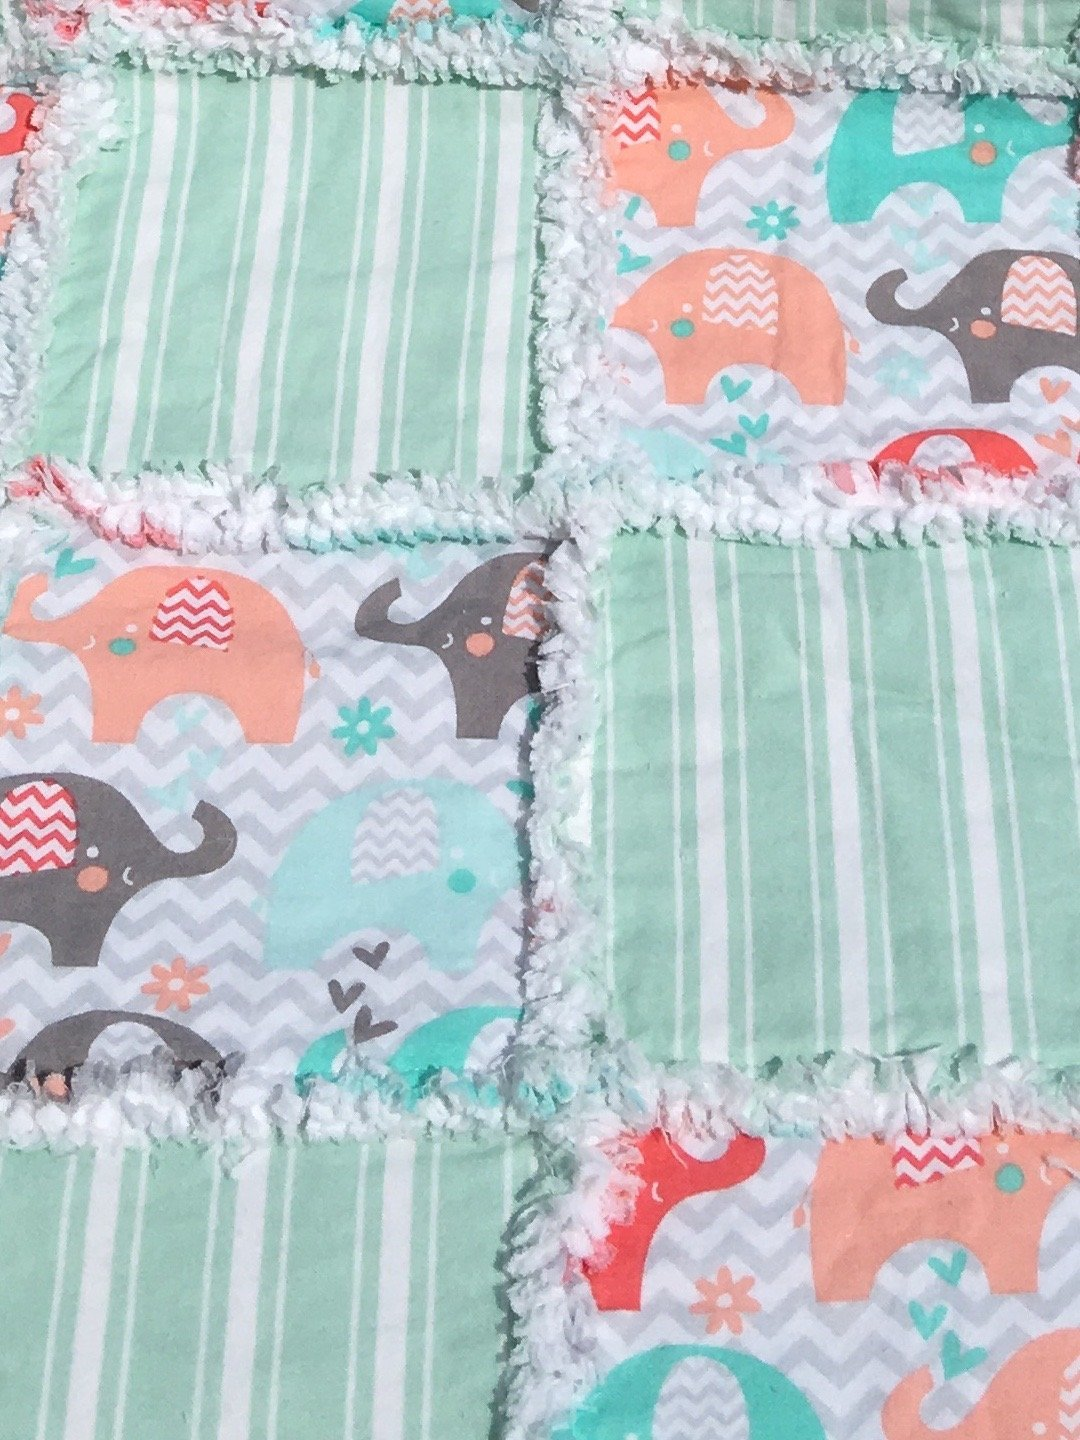 Baby quilt with colorful elephants in coral, peach, grey, and mint alternating with green stripes